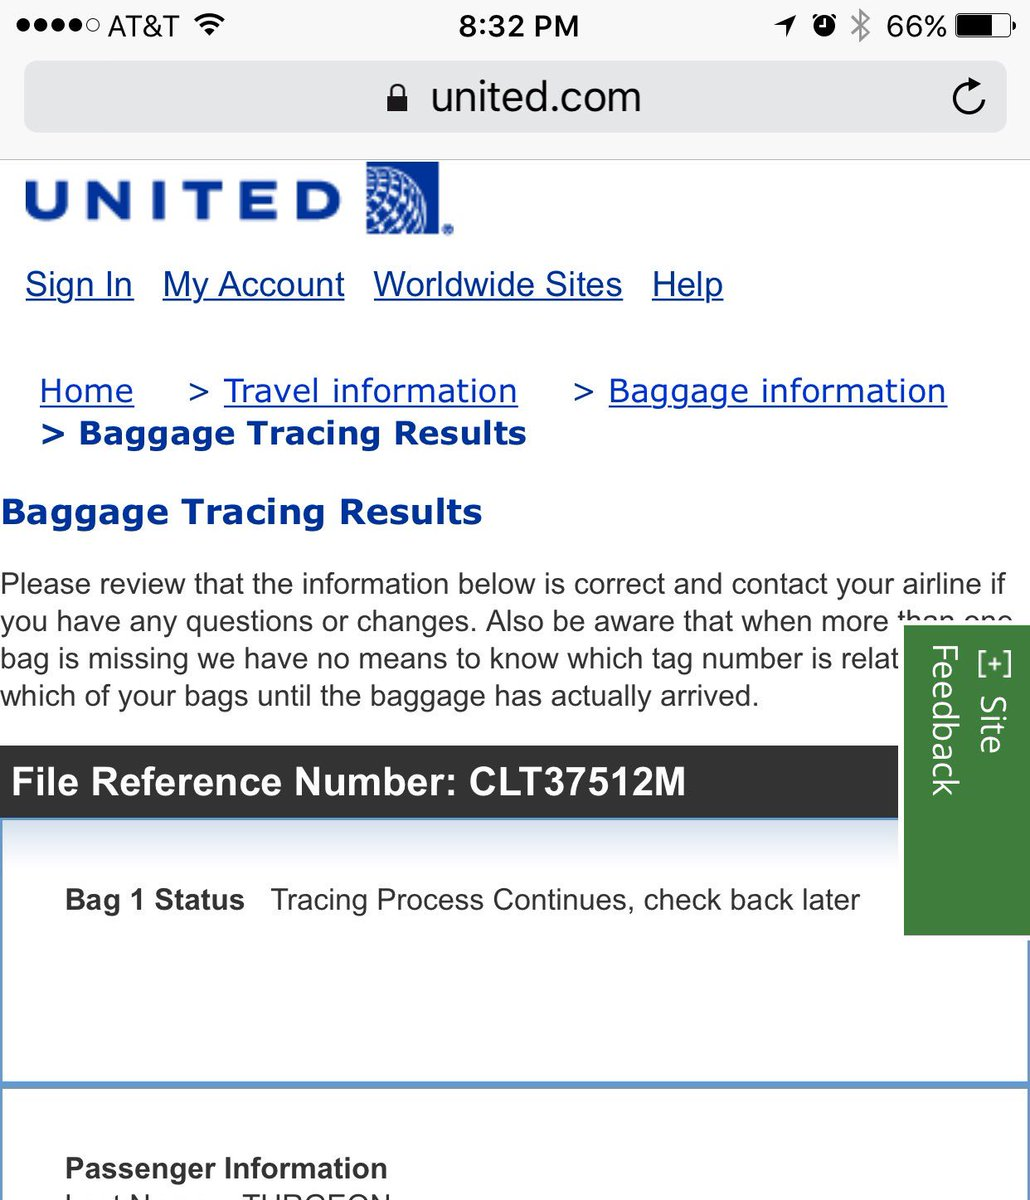 United Airlines On Twitter Try Tracing Your Bag Here Https T Co Ncacrdlkwy For More Detailed Information Nm,Disneyland Dream Suite Cost